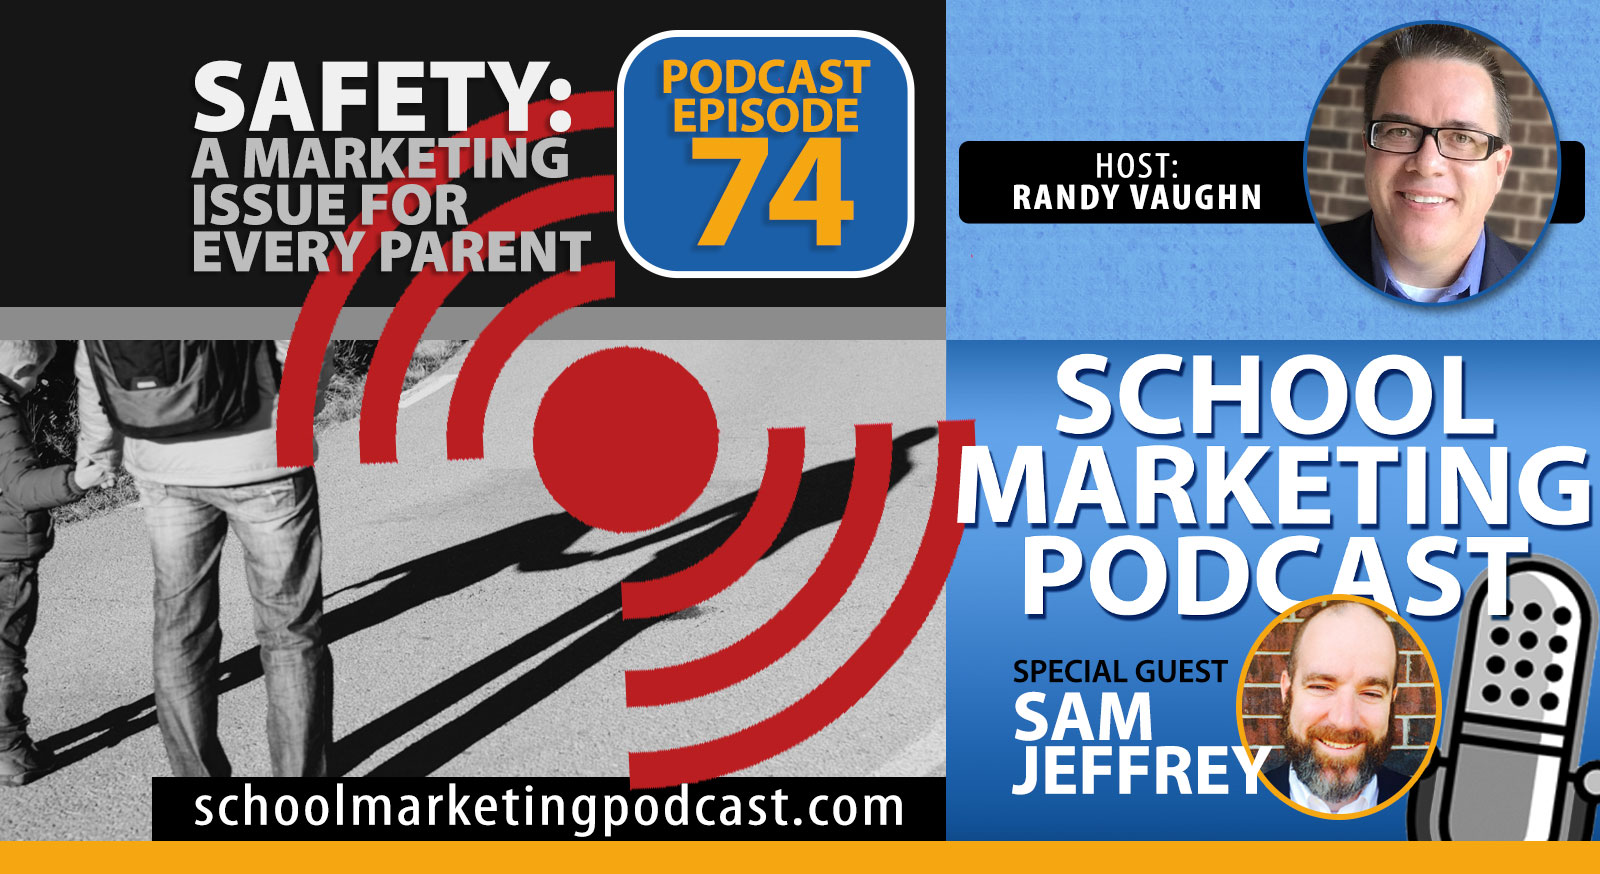 Safety: A Marketing Issue for Every Parent - Interview with Sam Jeffrey (School Marketing Podcast #74)